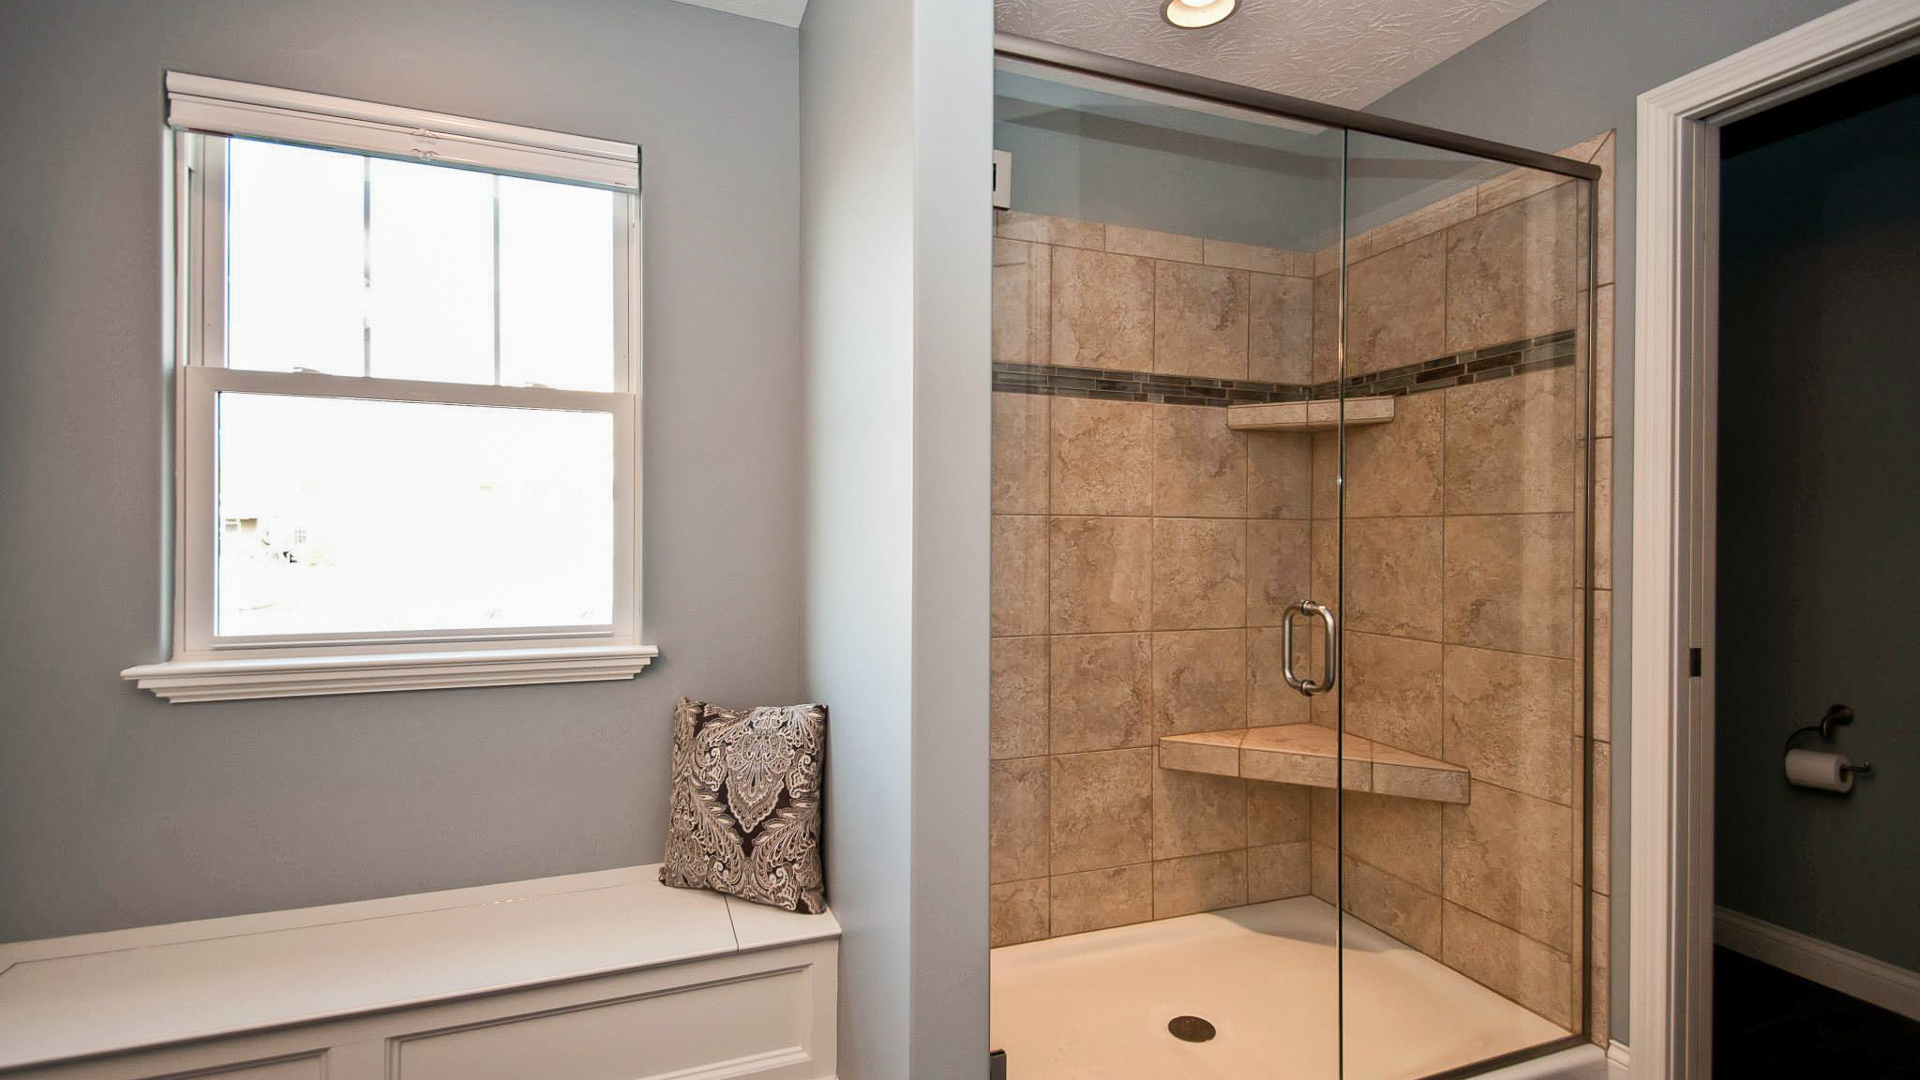 Shower with ceramic tile and separate built in bench